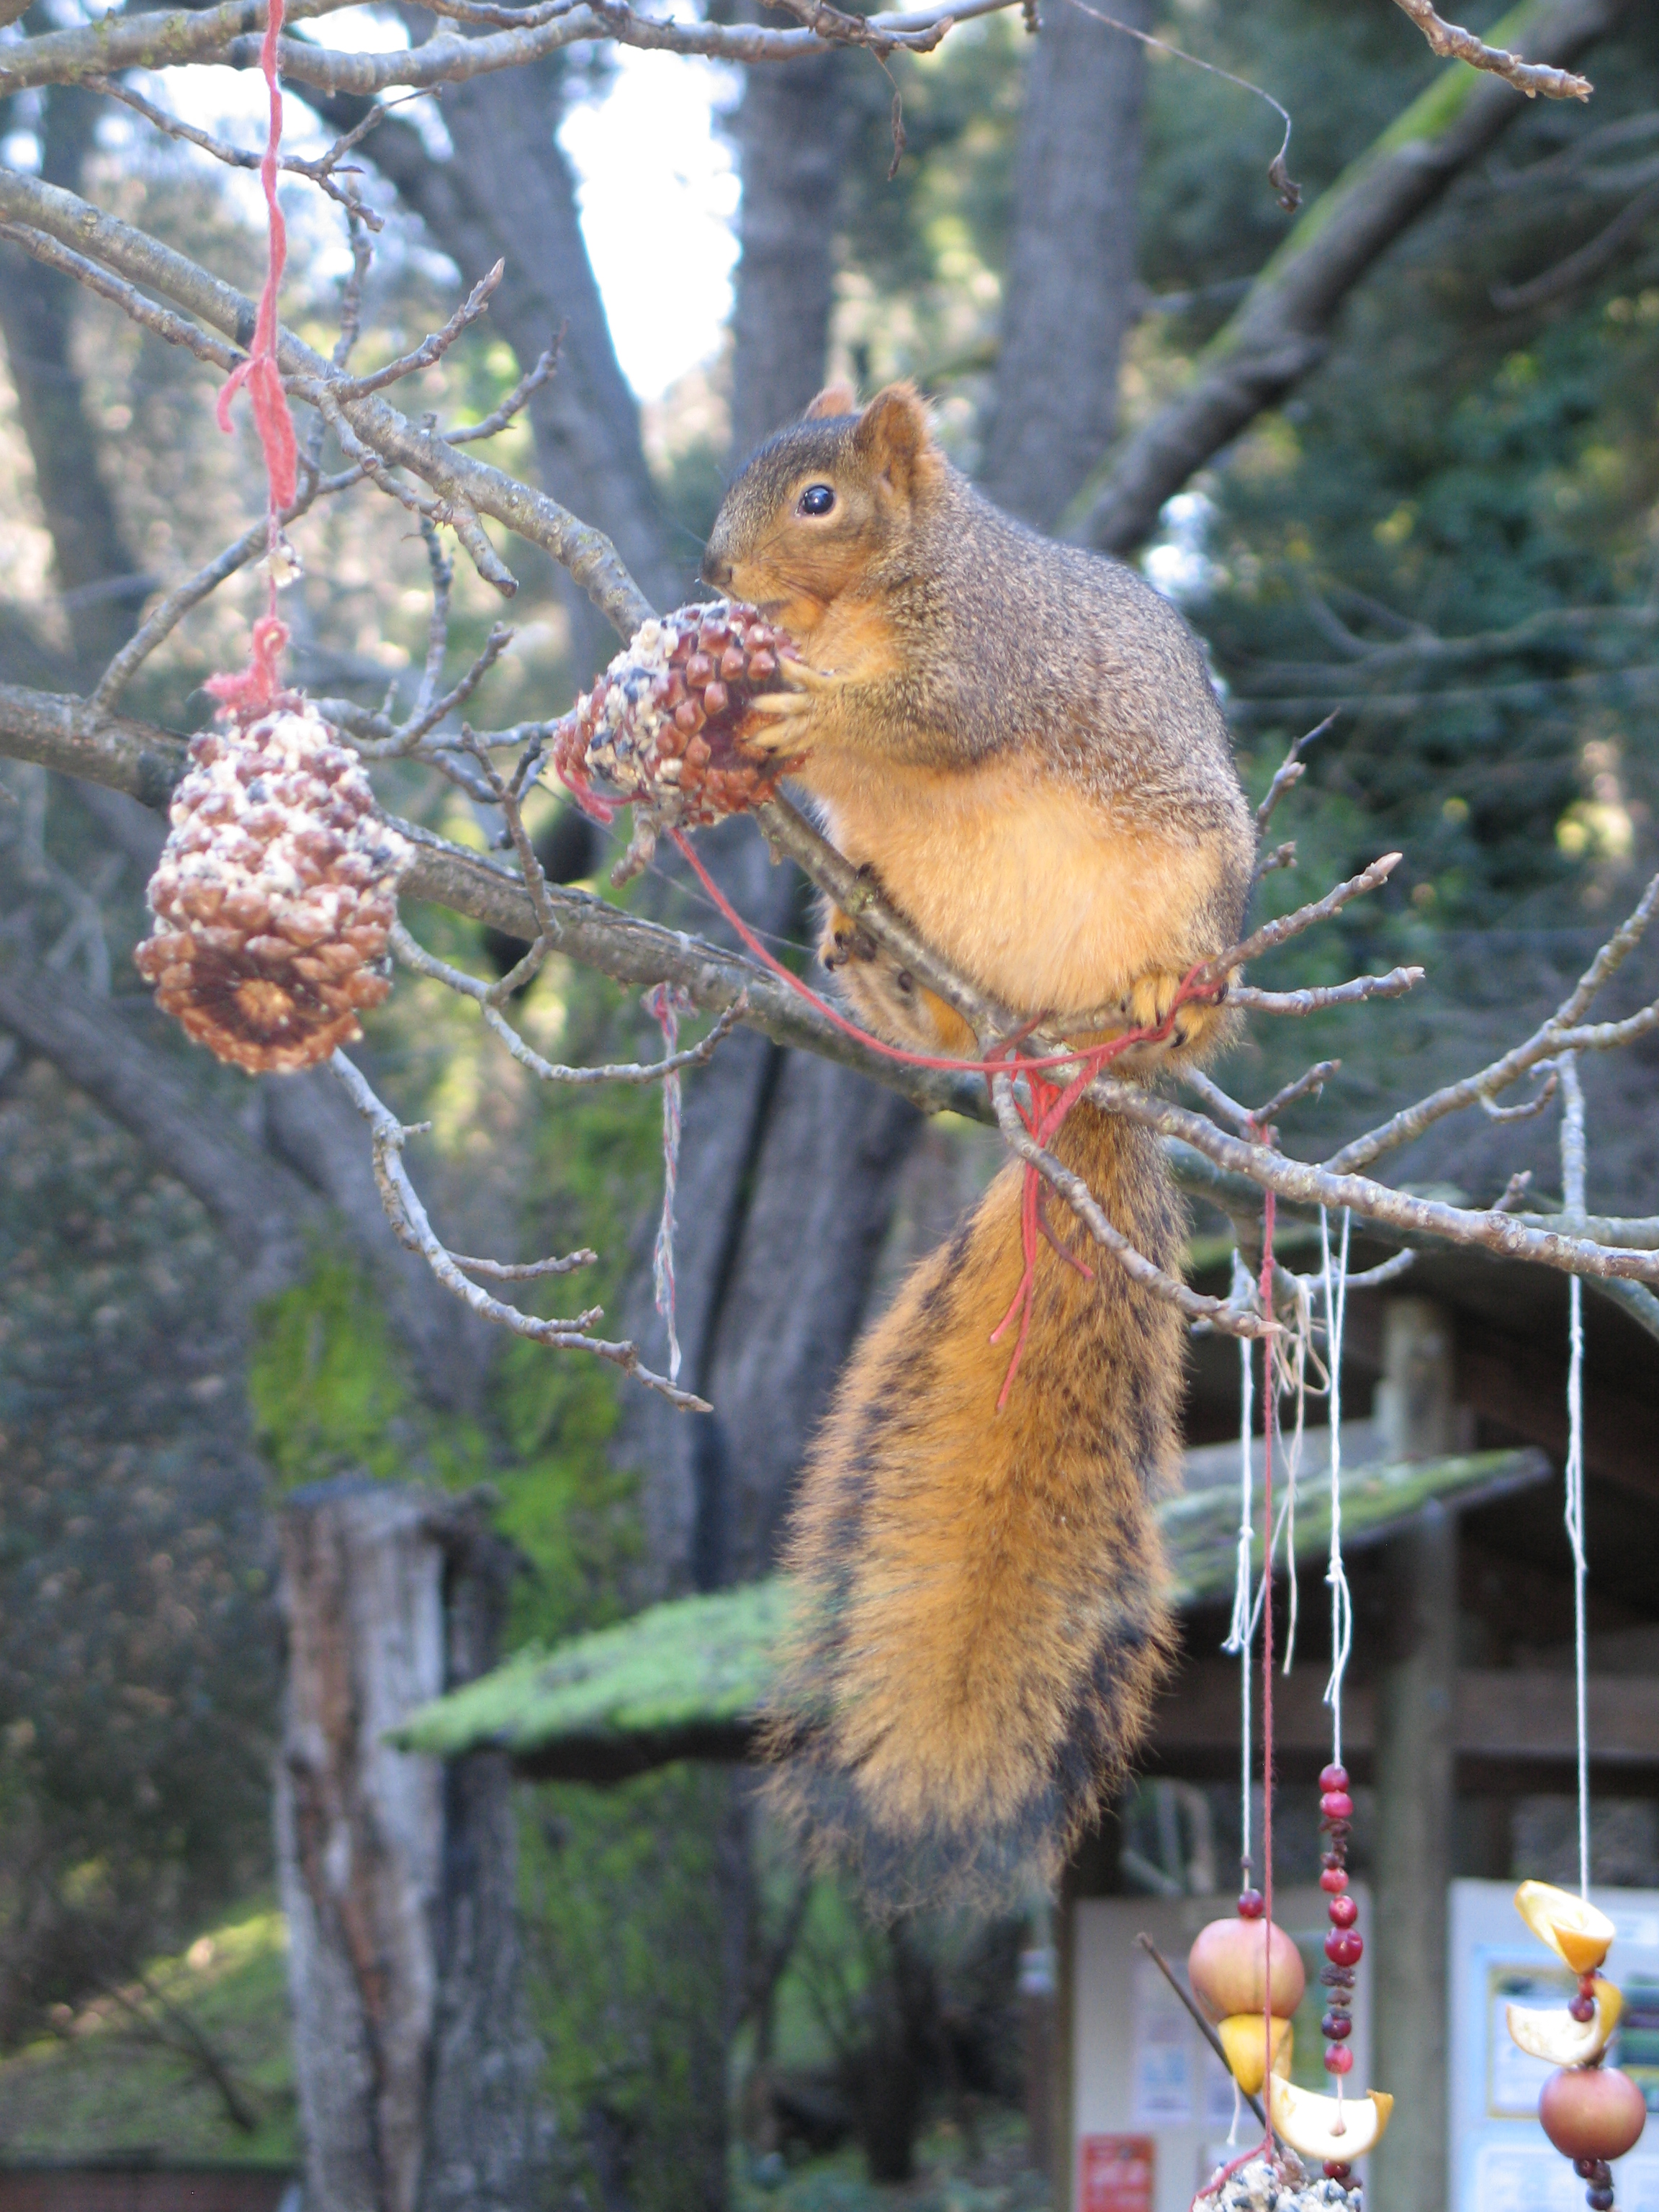 Squirrel on a branch eating a suet covered pine cone